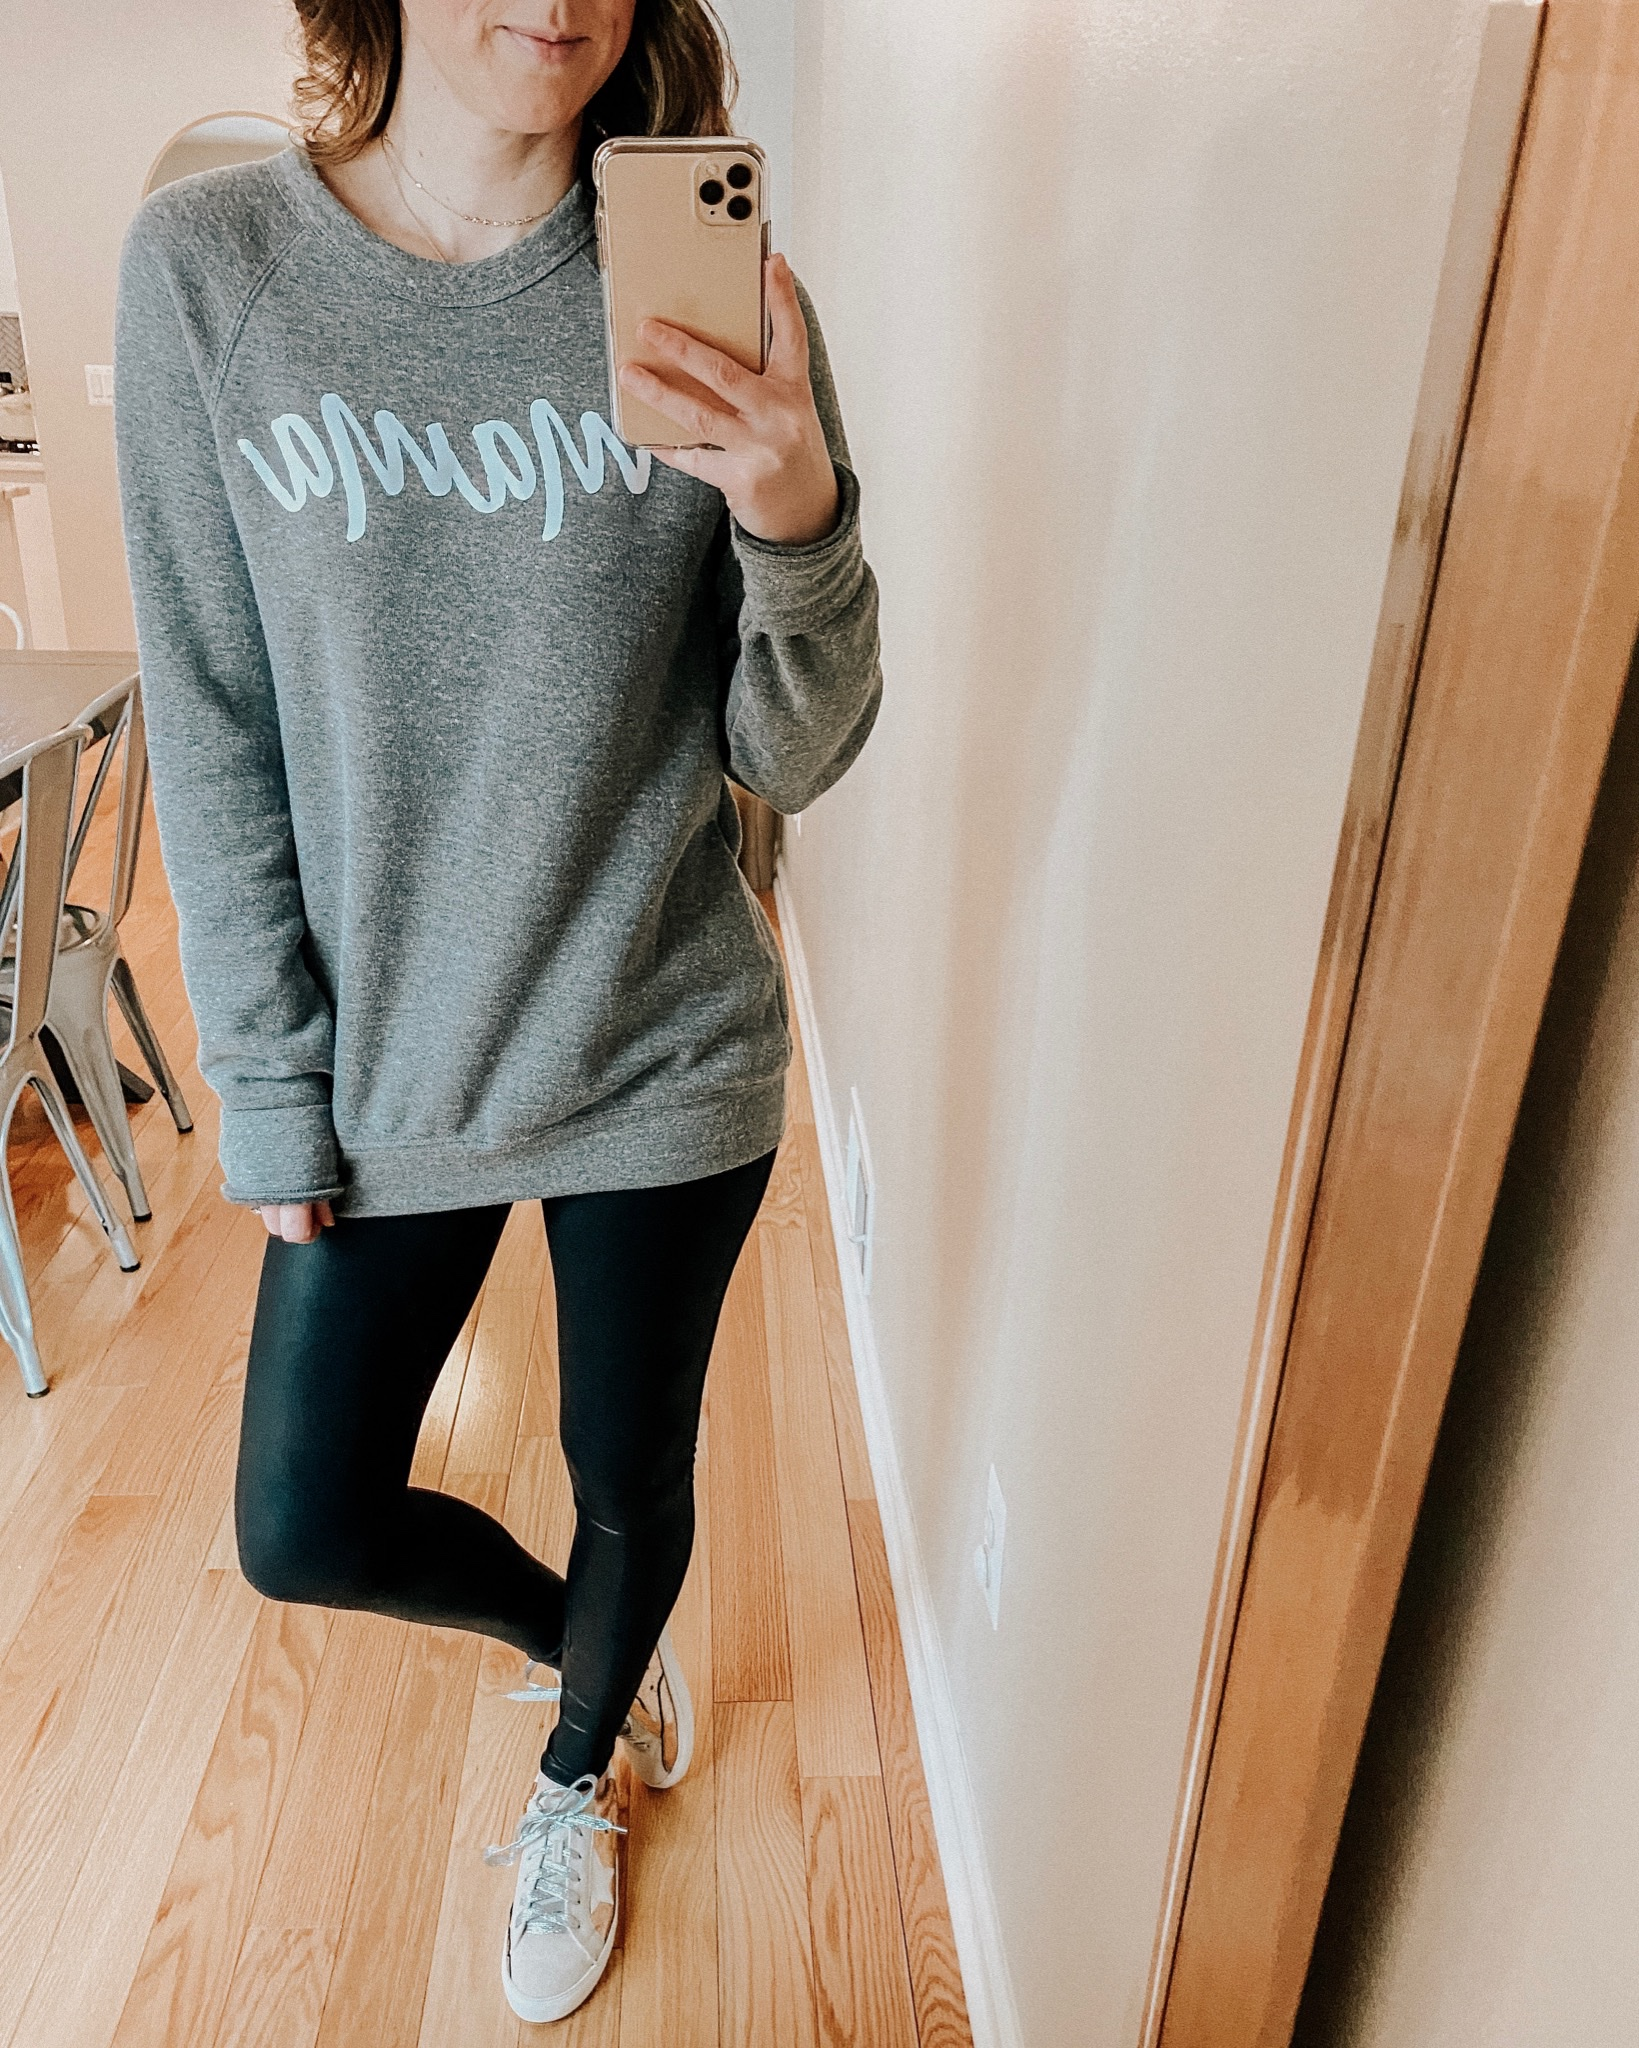 Graphic Sweatshirt Try On | Daily Splendor Life and Style Blog | Mama sweatshirt #momlife #momstyle #casualstyle